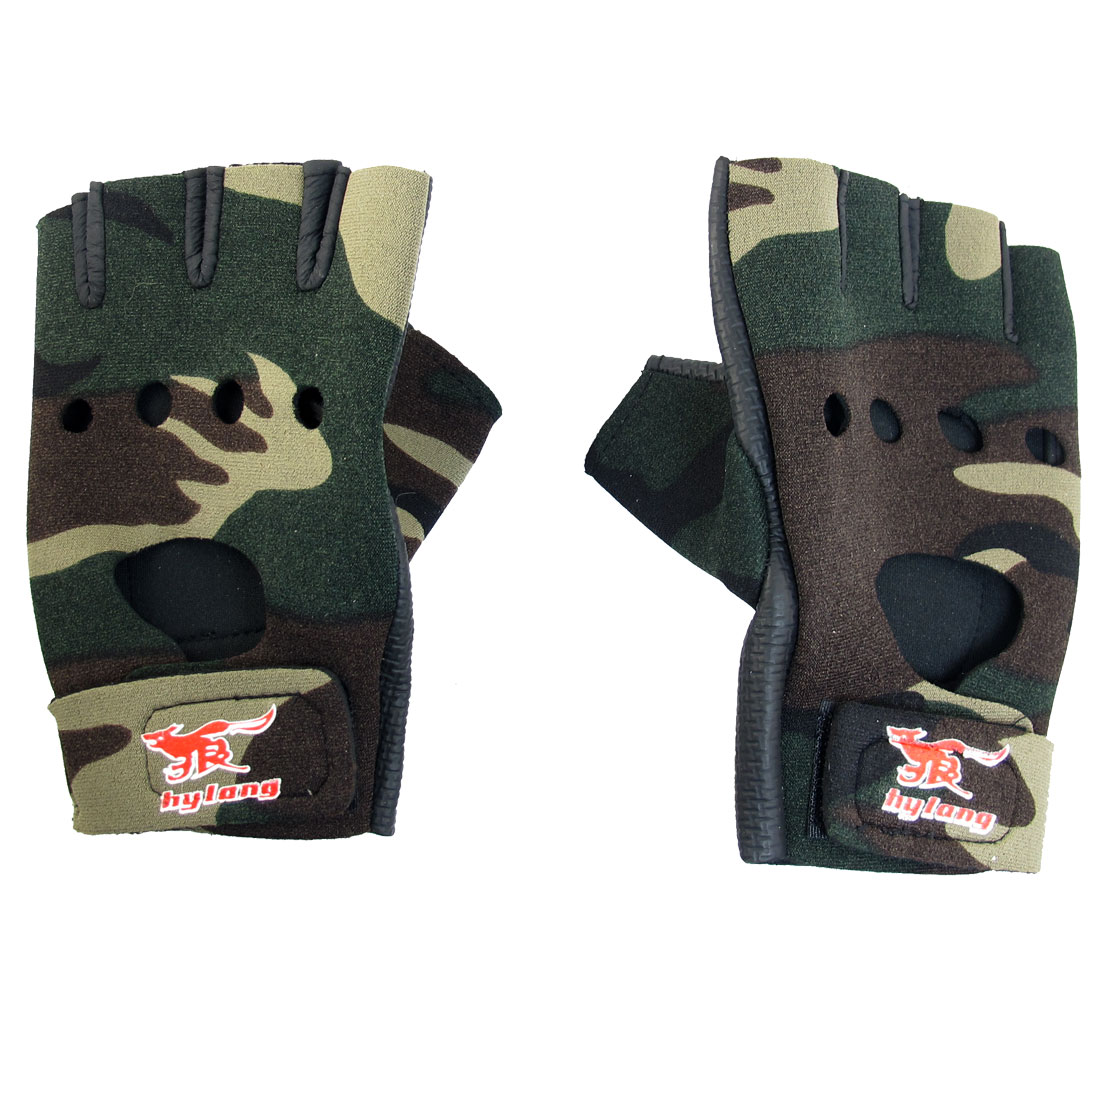 Unisex Camouflage Pattern Hook Loop Fastener Neoprene Driving Sport Gloves